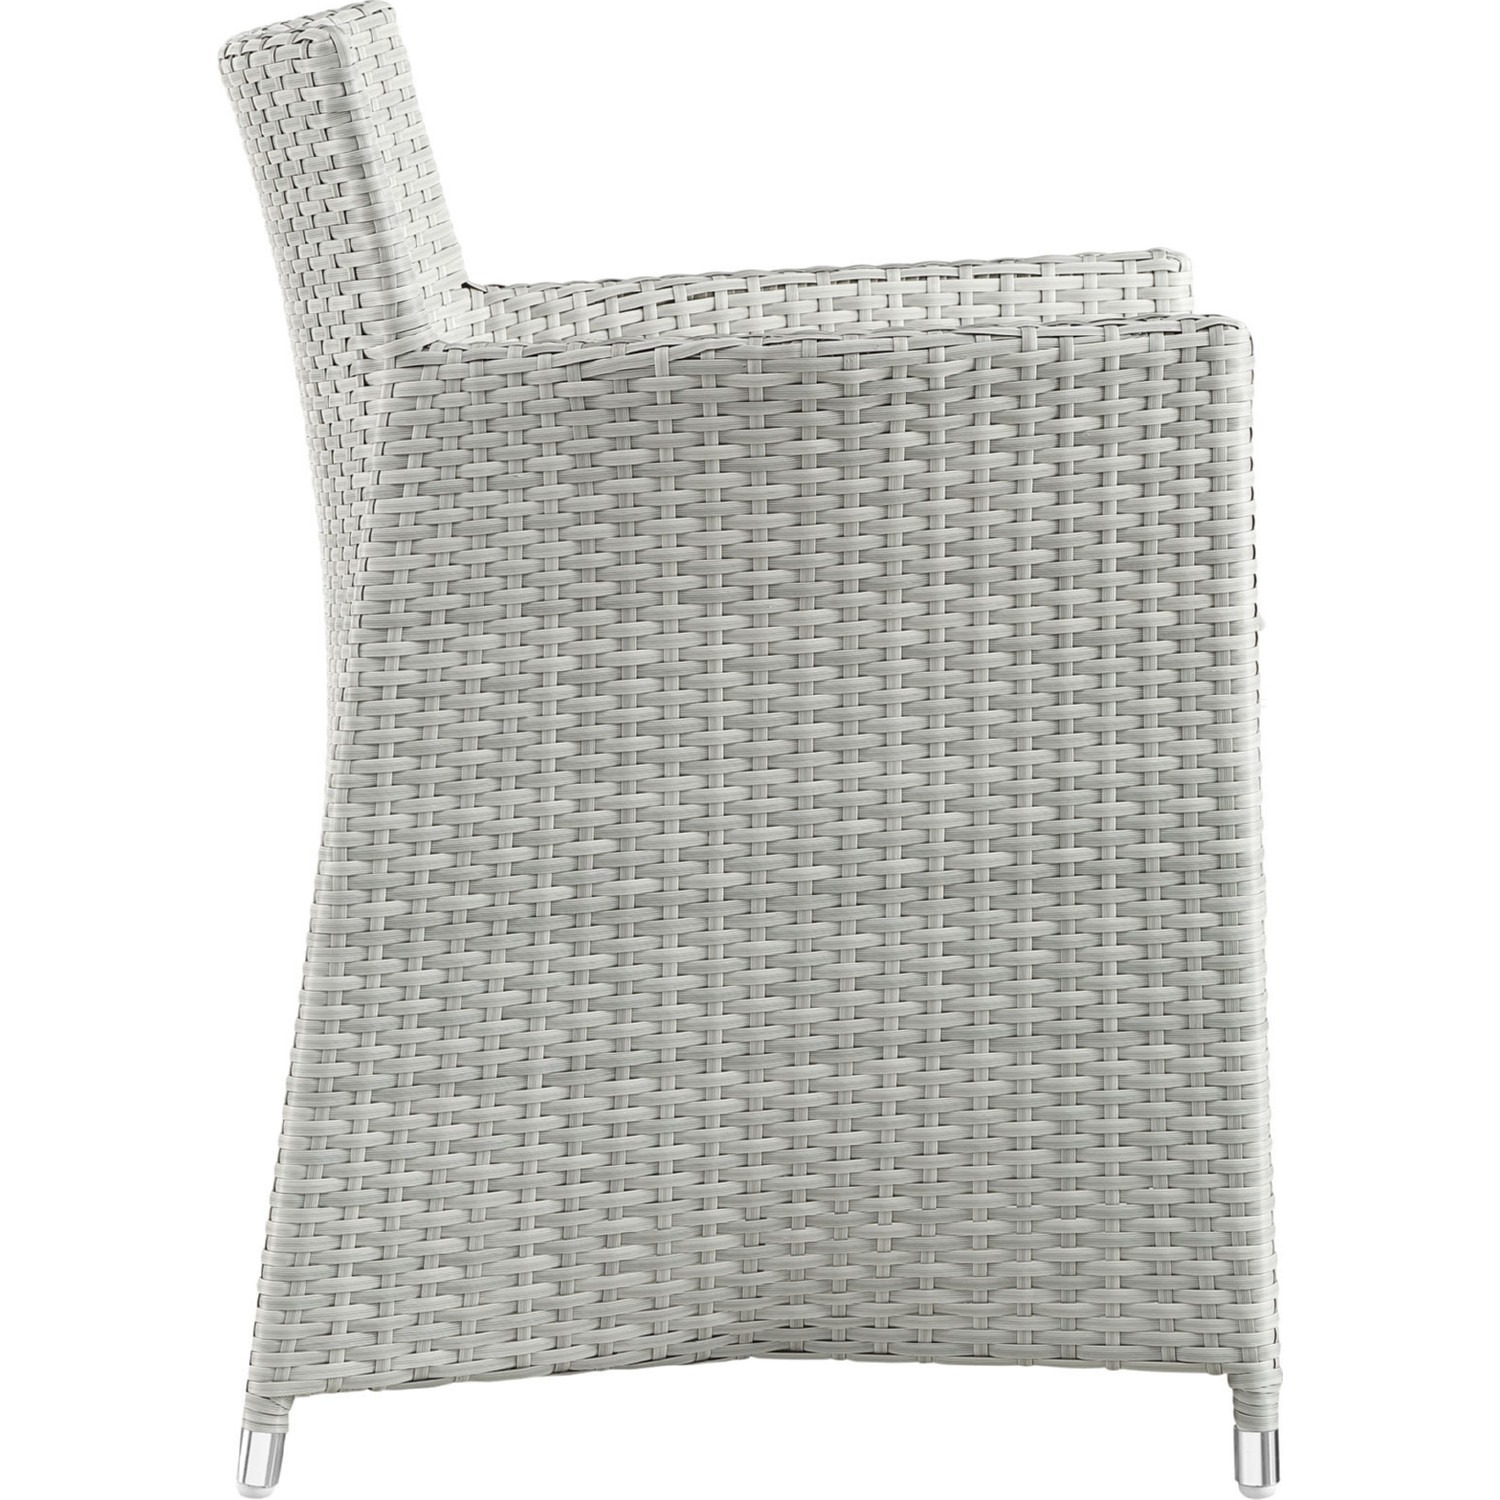 Modern 9-Piece Dining Set In Gray Rattan Weave - image-2